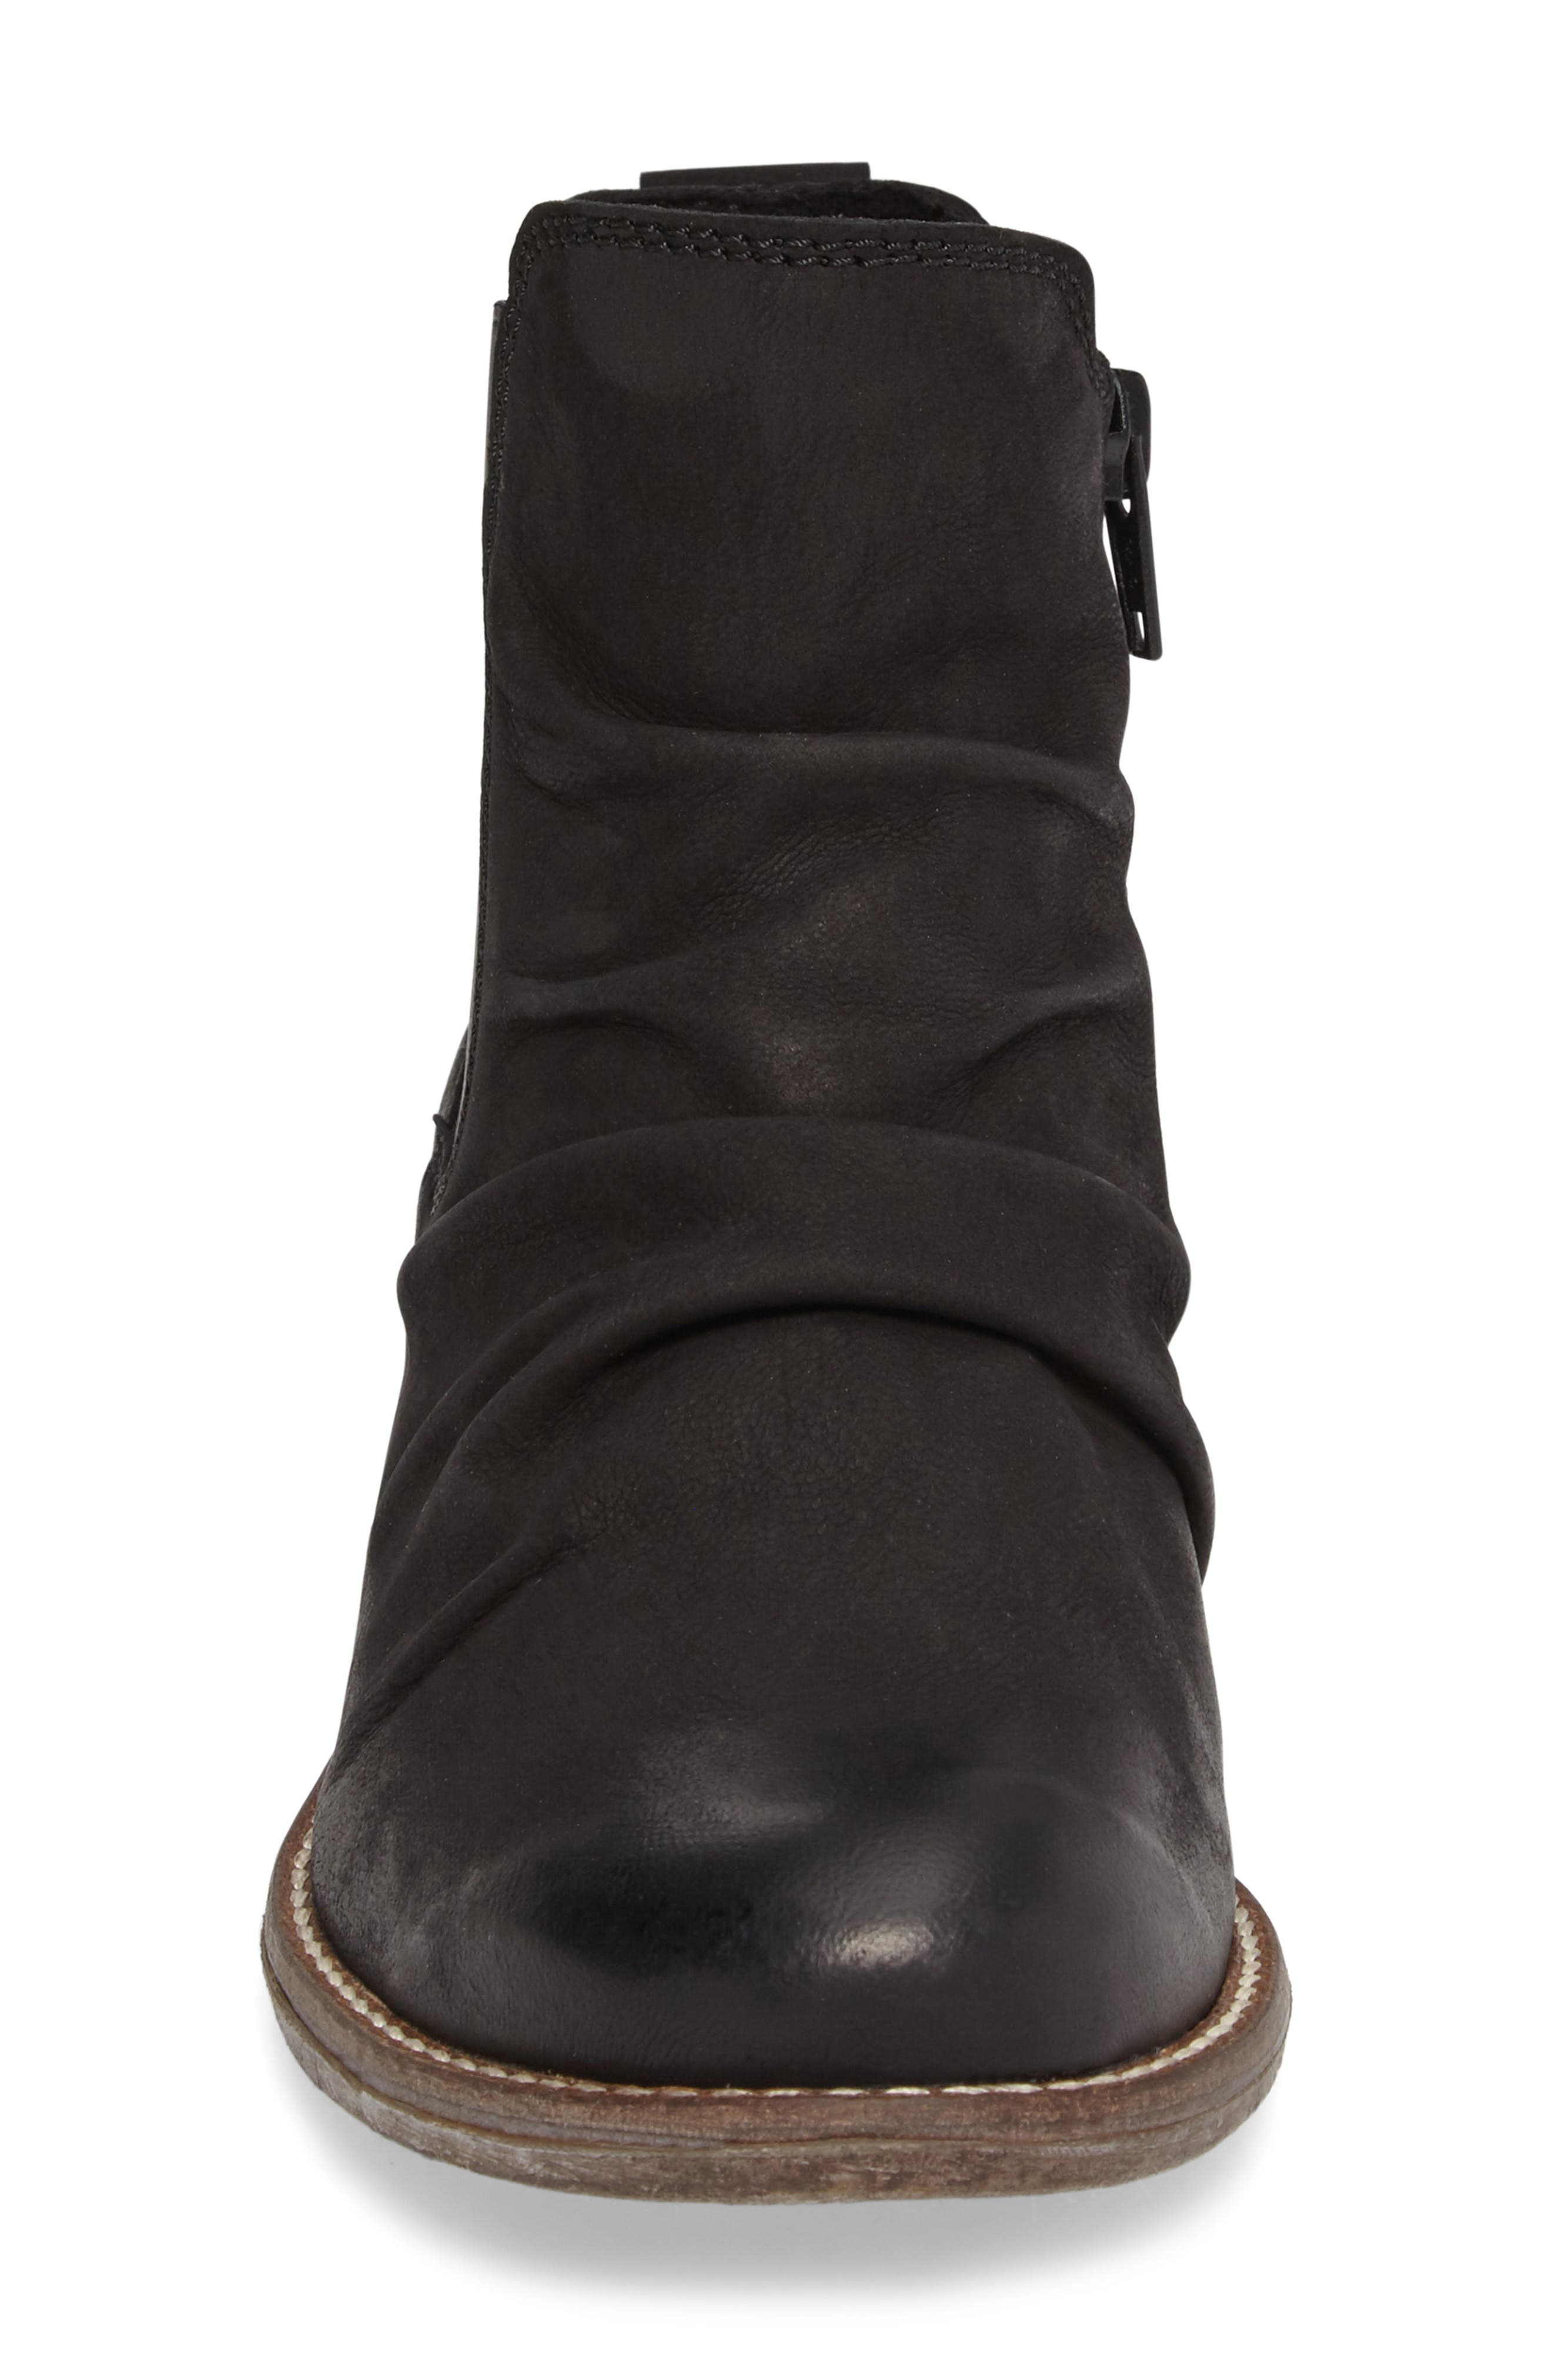 Sienna 59 Slouchy Chelsea Bootie,                             Alternate thumbnail 4, color,                             004